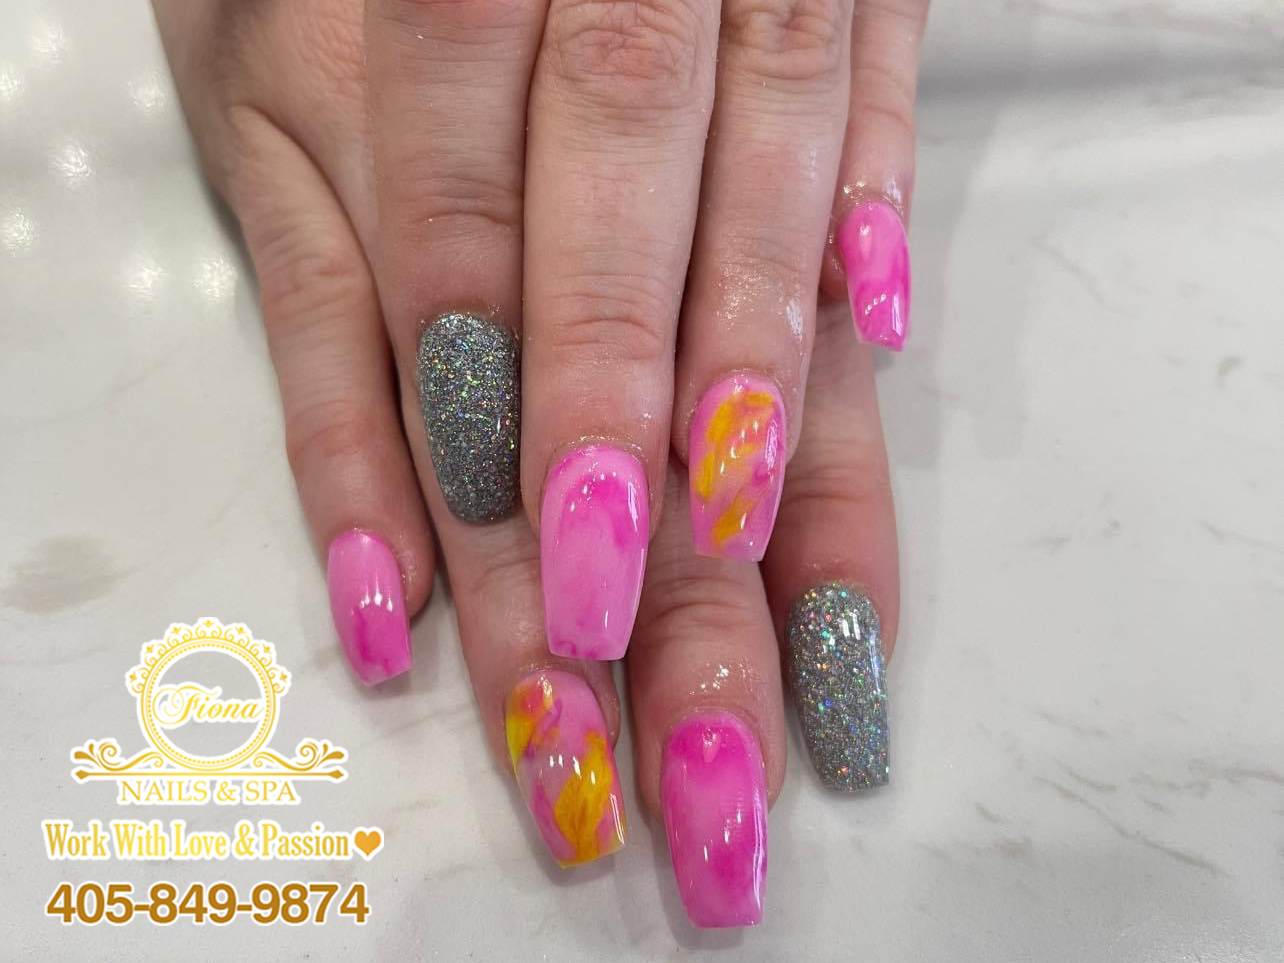 Are you searching for nails? Then this nail design idea is for you!